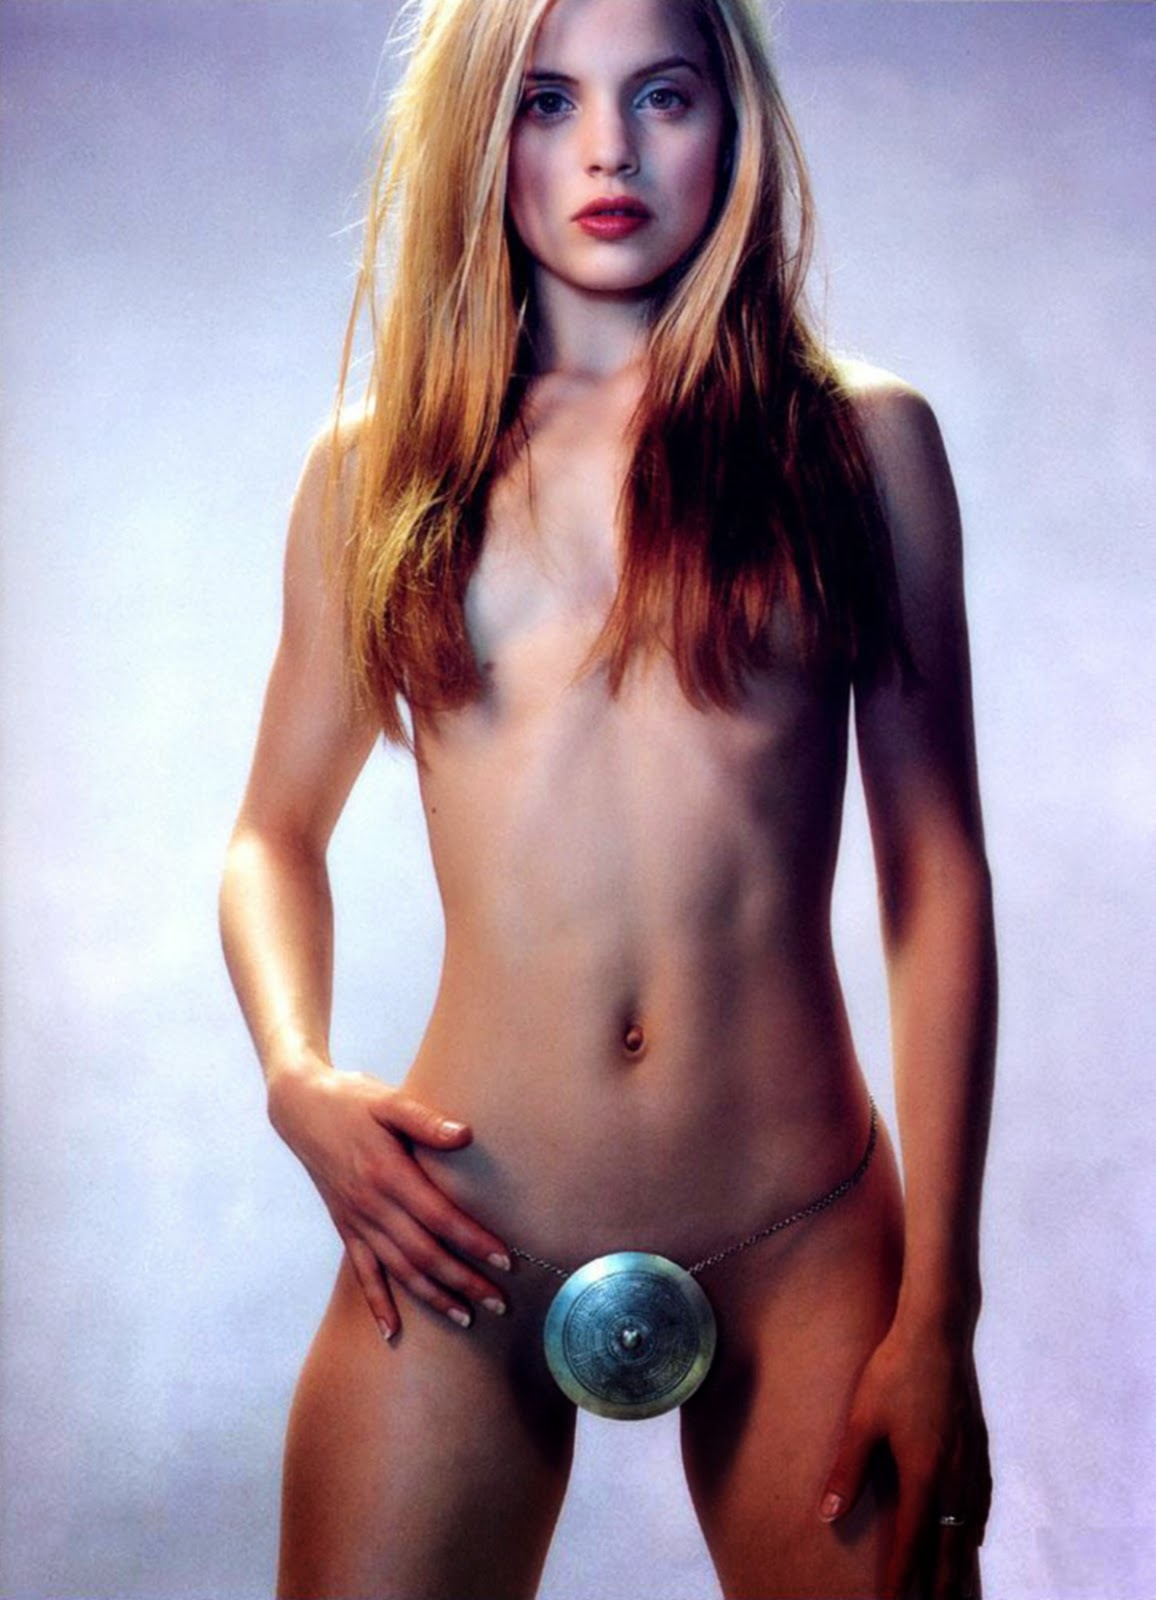 Mena suvari american beauty tits Song